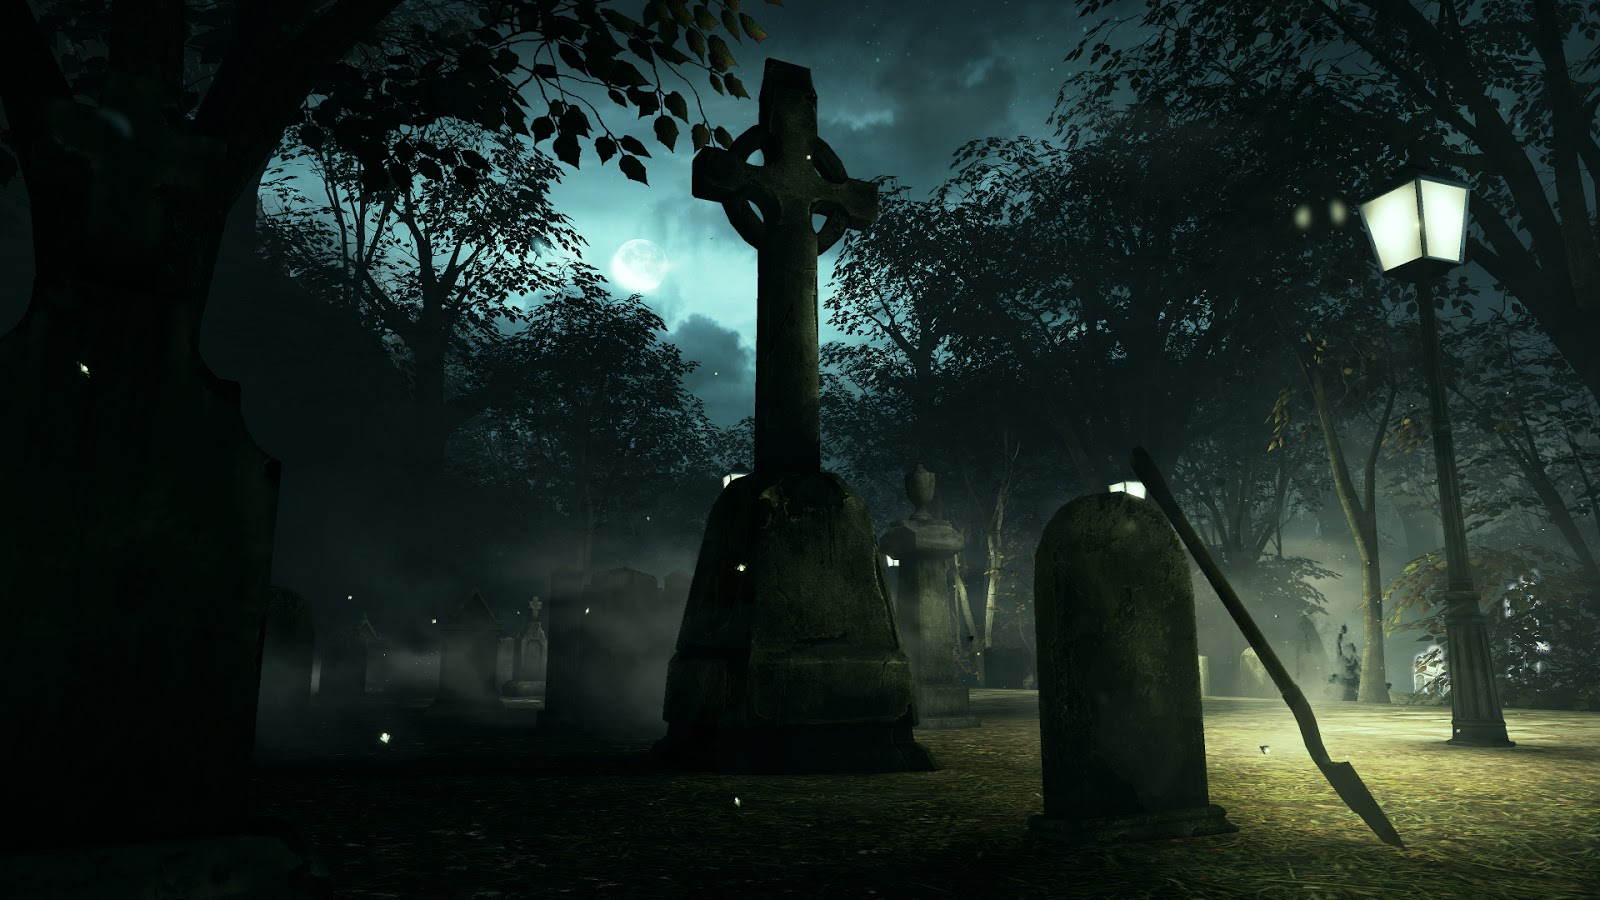 Suicide real women ghost photos hd wallpapers - Ghost wallpapers for desktop hd ...